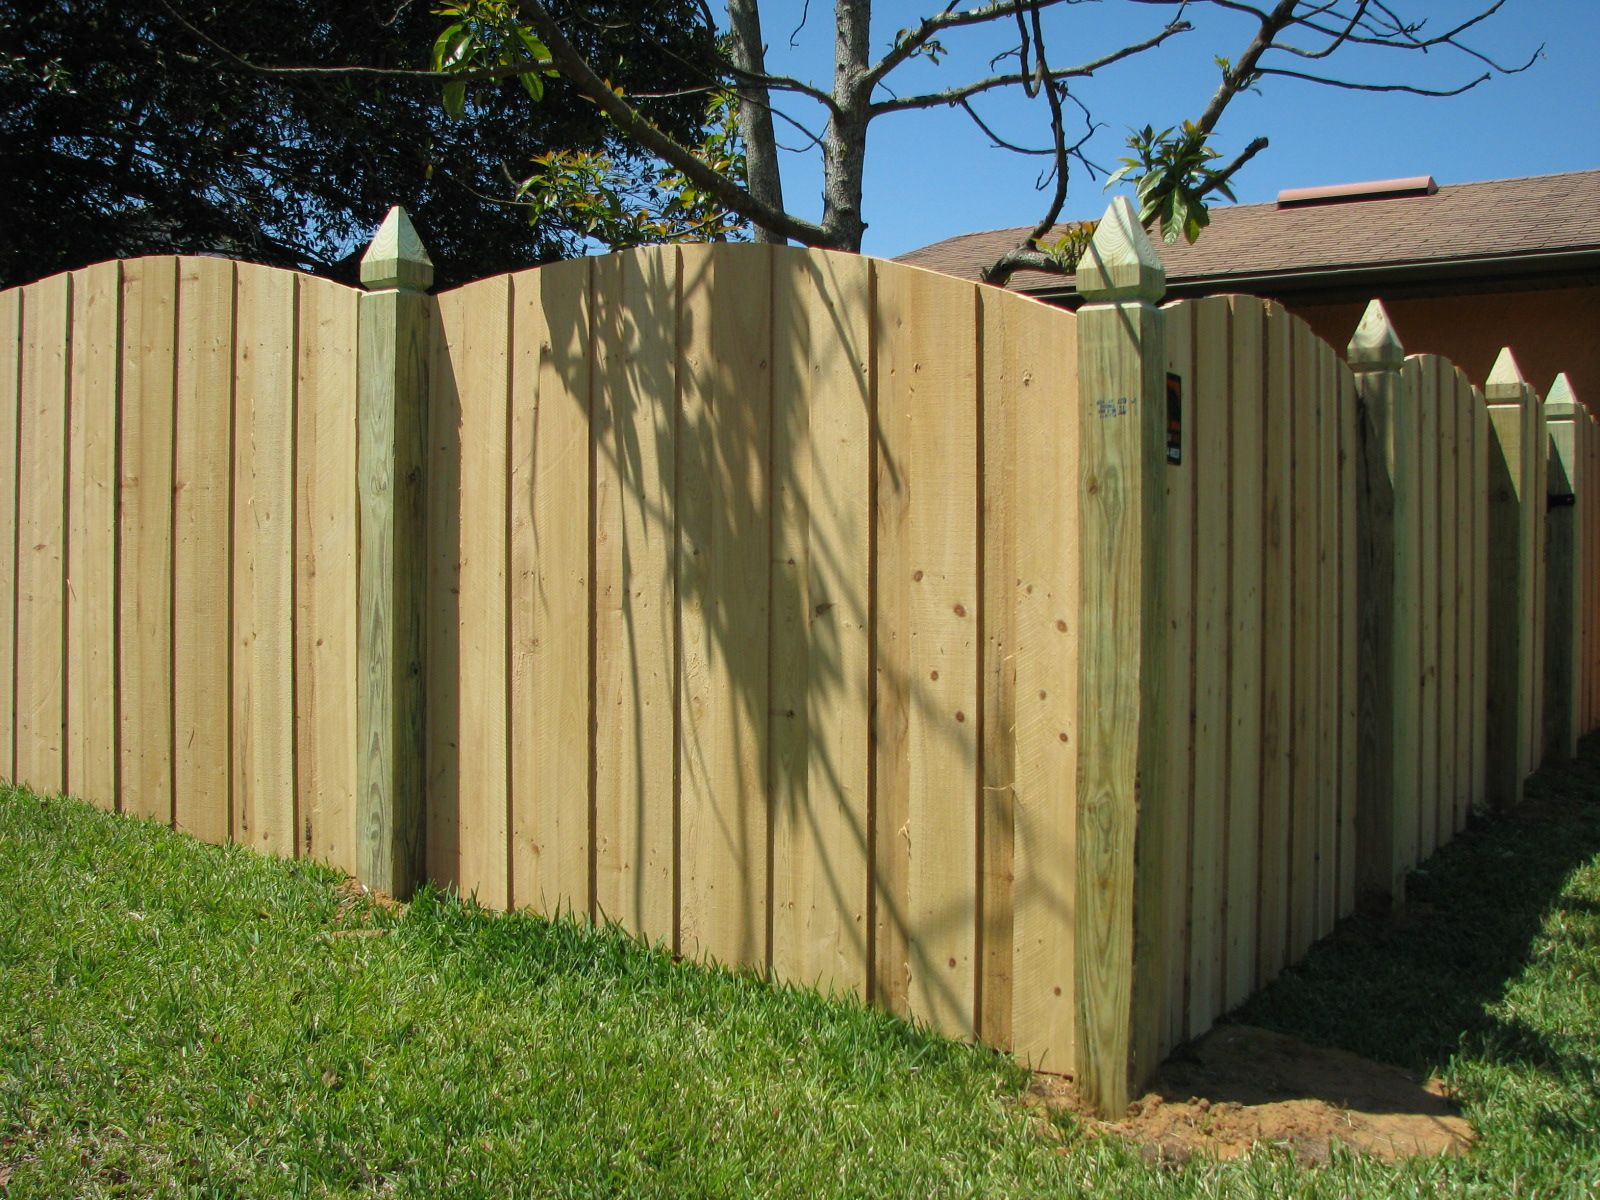 scallop cut wood privacy fence design